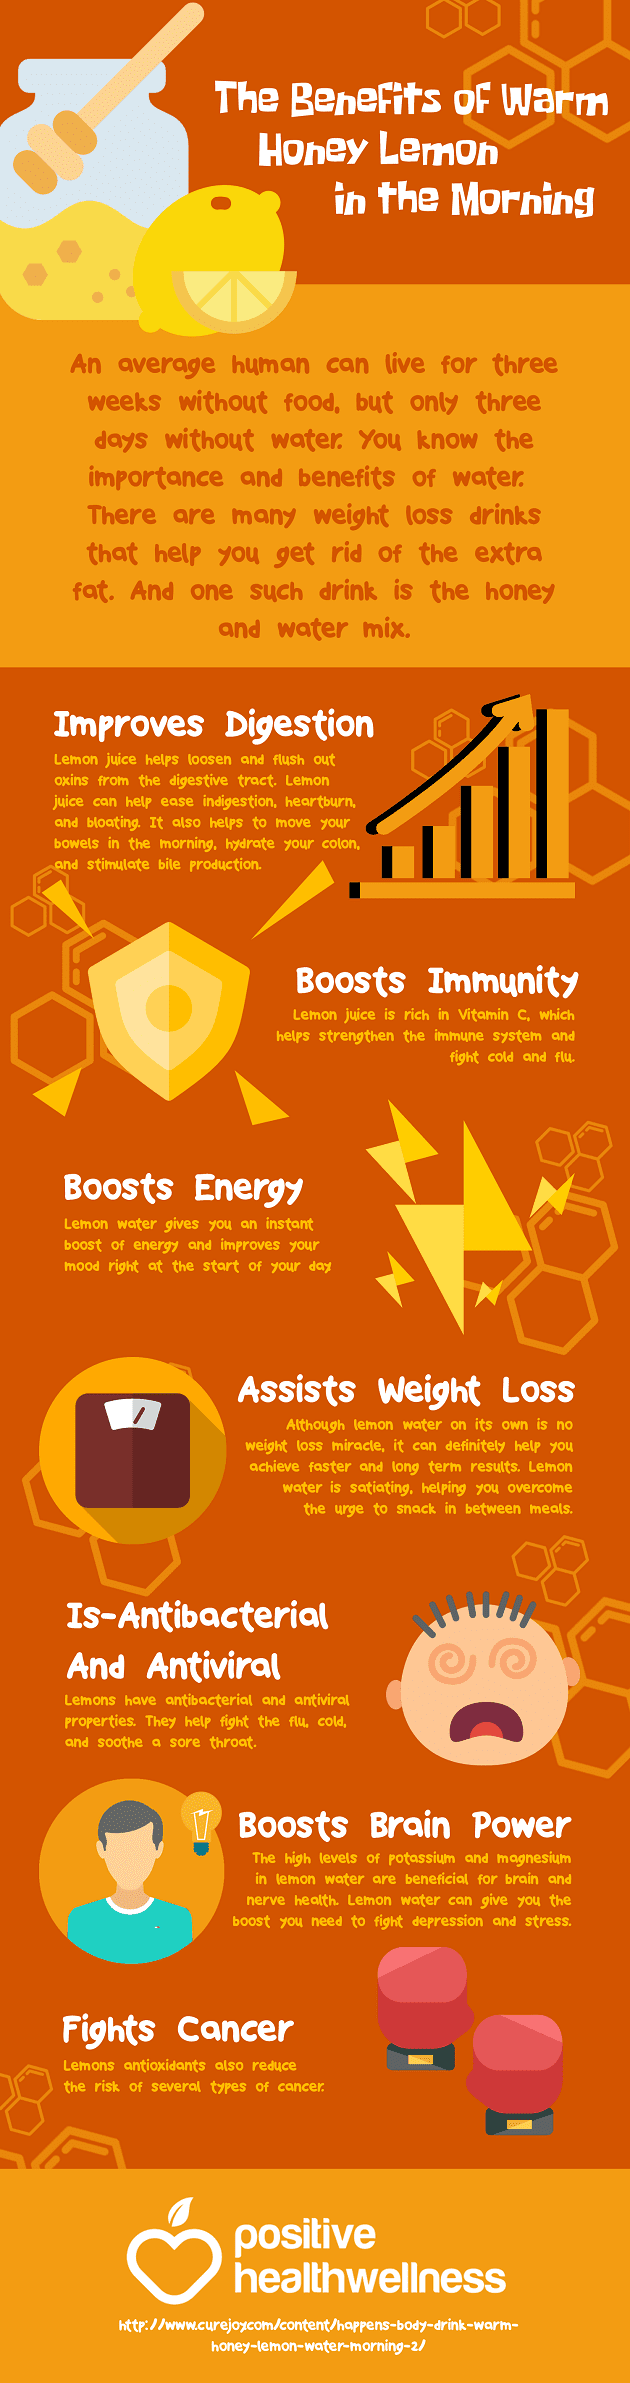 The Benefits of Warm Honey Lemon in the Morning